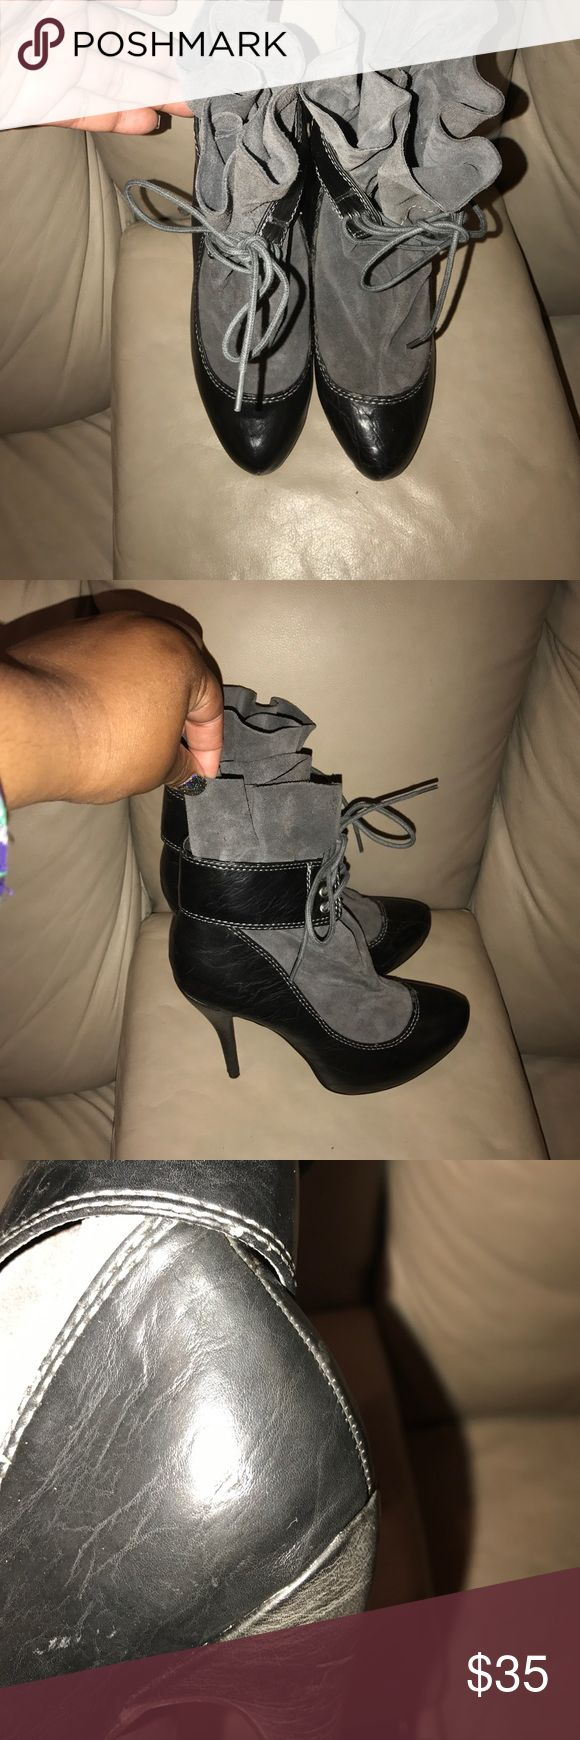 STEVE MADDEN BOOT SIZE 5M SUPER CUTE STEVE MADDEN BOOT SIZE 5 (there's a small nick on the side of the boot you can barely see...look at pics) Steve Madden Shoes Heeled Boots